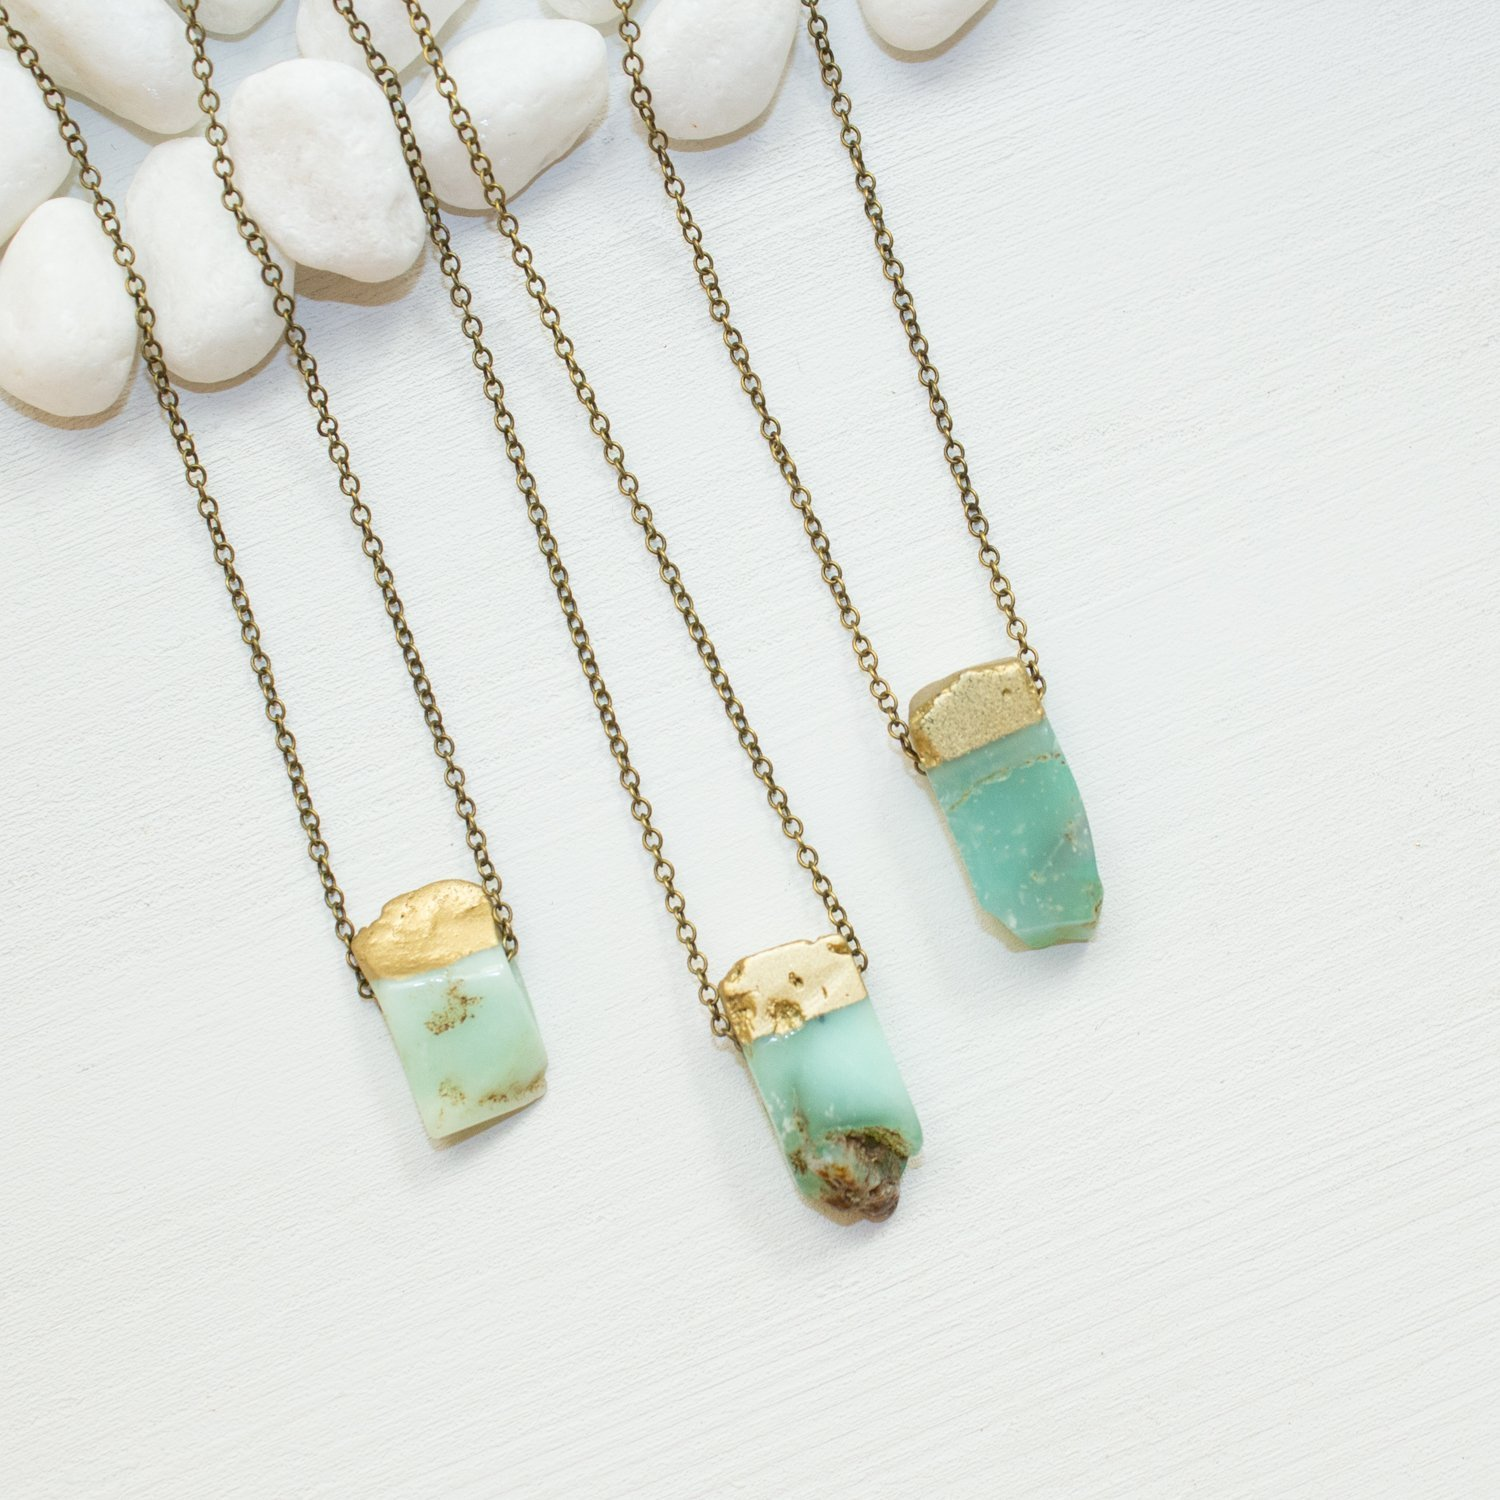 gallery yellow necklace irene lyst product with chrysoprase stones jewelry gold neuwirth